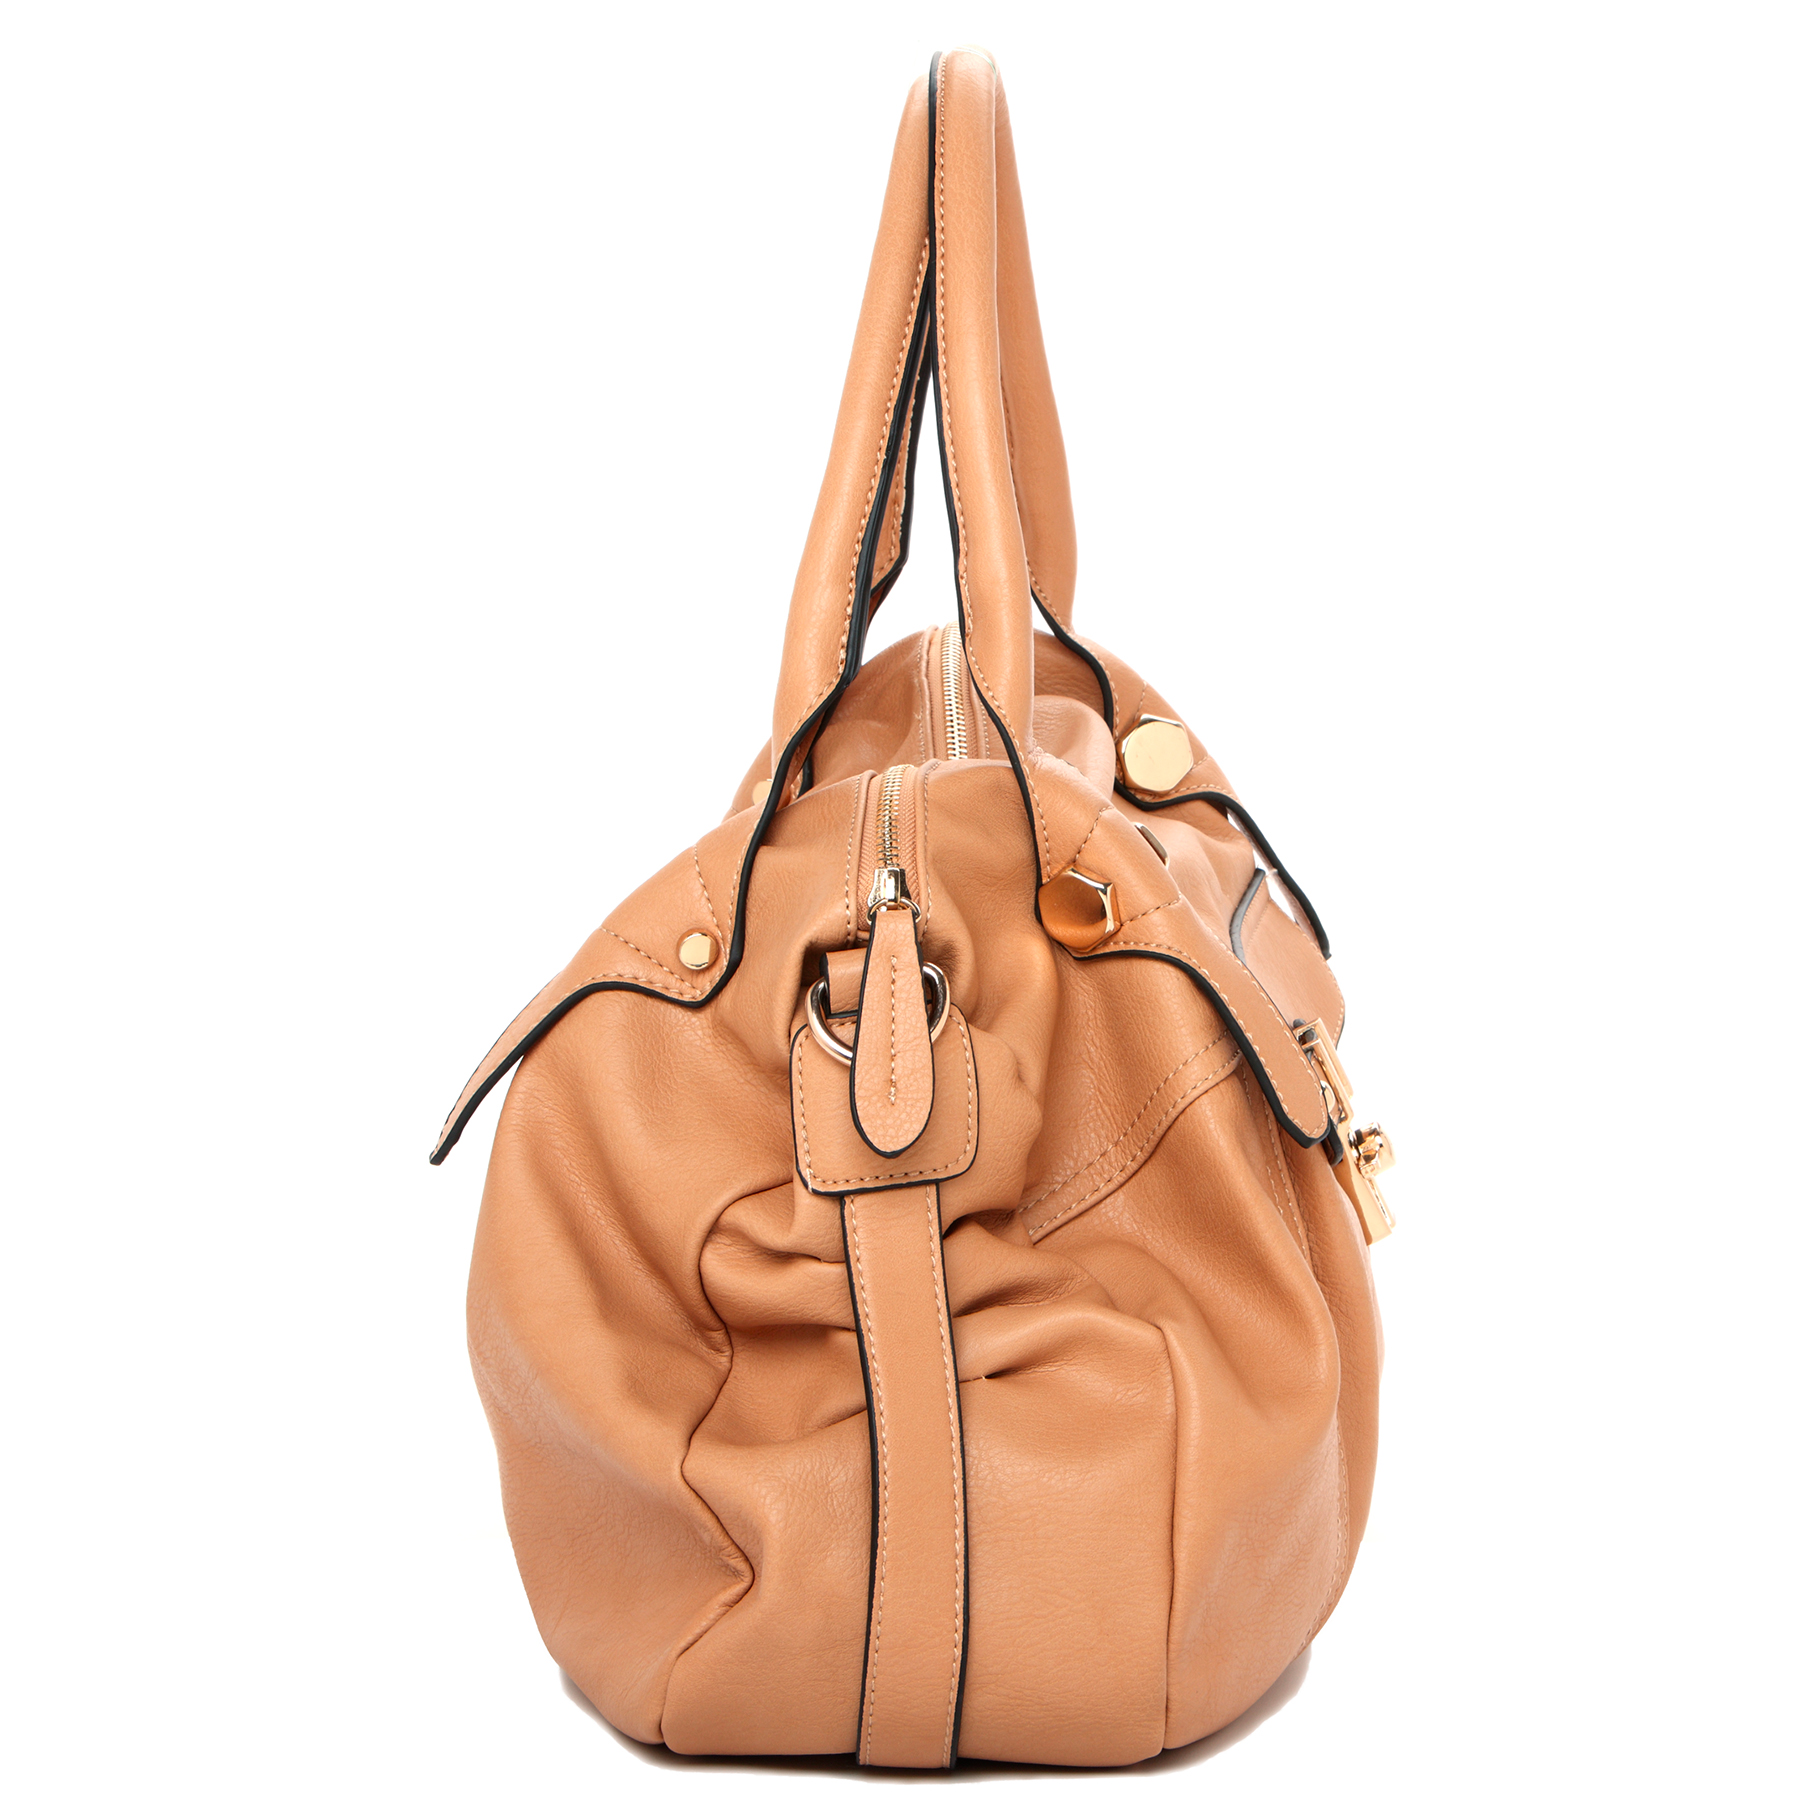 CAME Apricot Office Tote Style Satchel Handbag Side